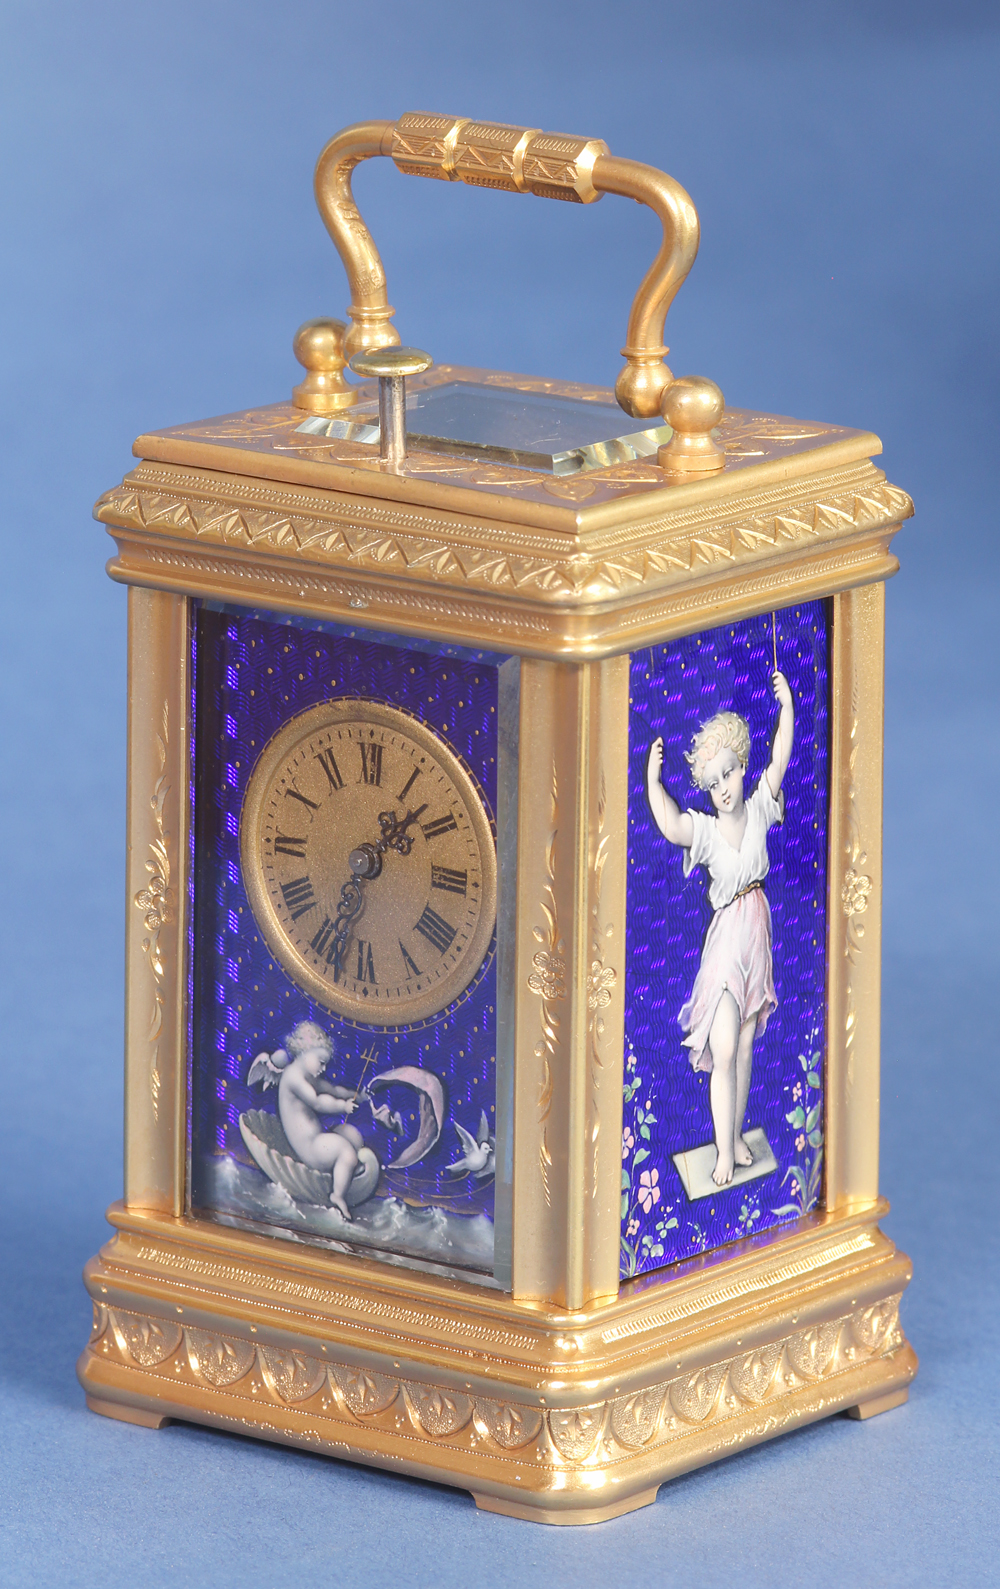 engraved miniature 1/4 striking carriage clock